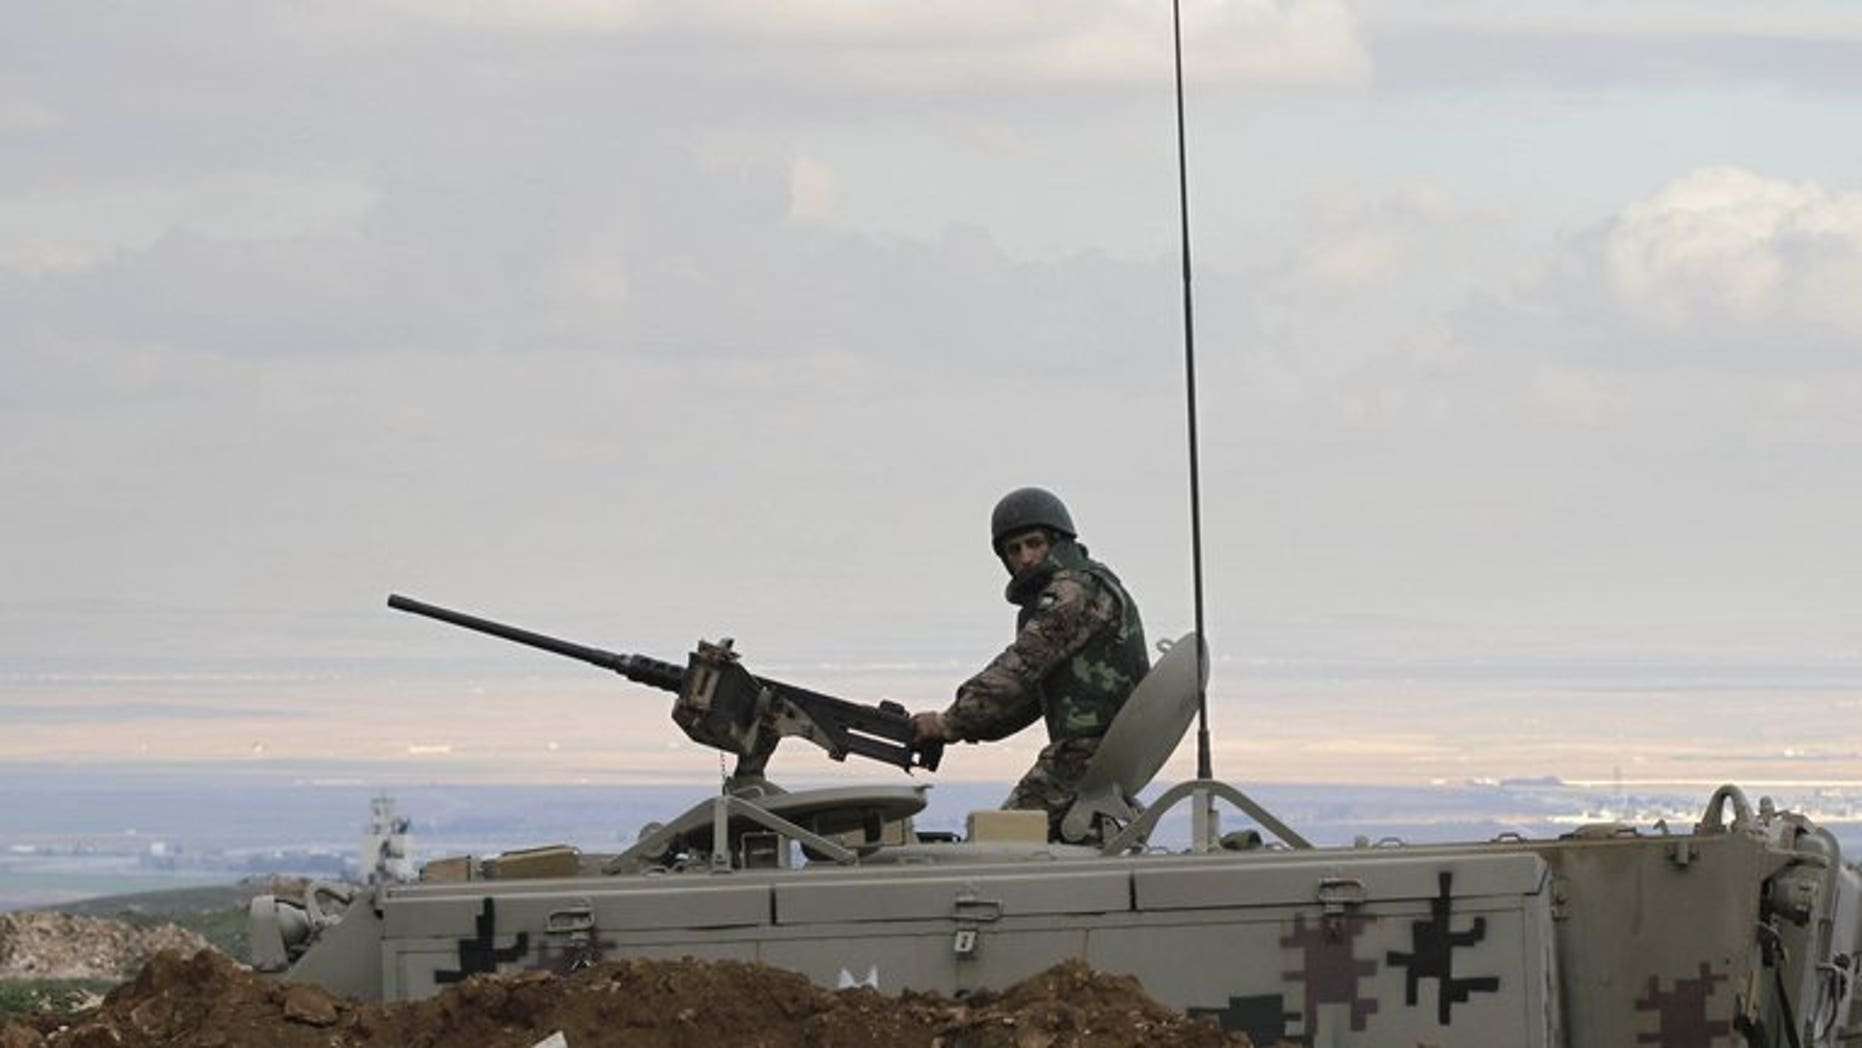 A Jordanian soldier keeps watch near Mafraq, on the border with Syria, on February 18, 2013. Jordan says its border guards have foiled an attempt to smuggle large amounts of weapons and drugs into the kingdom from Syria.